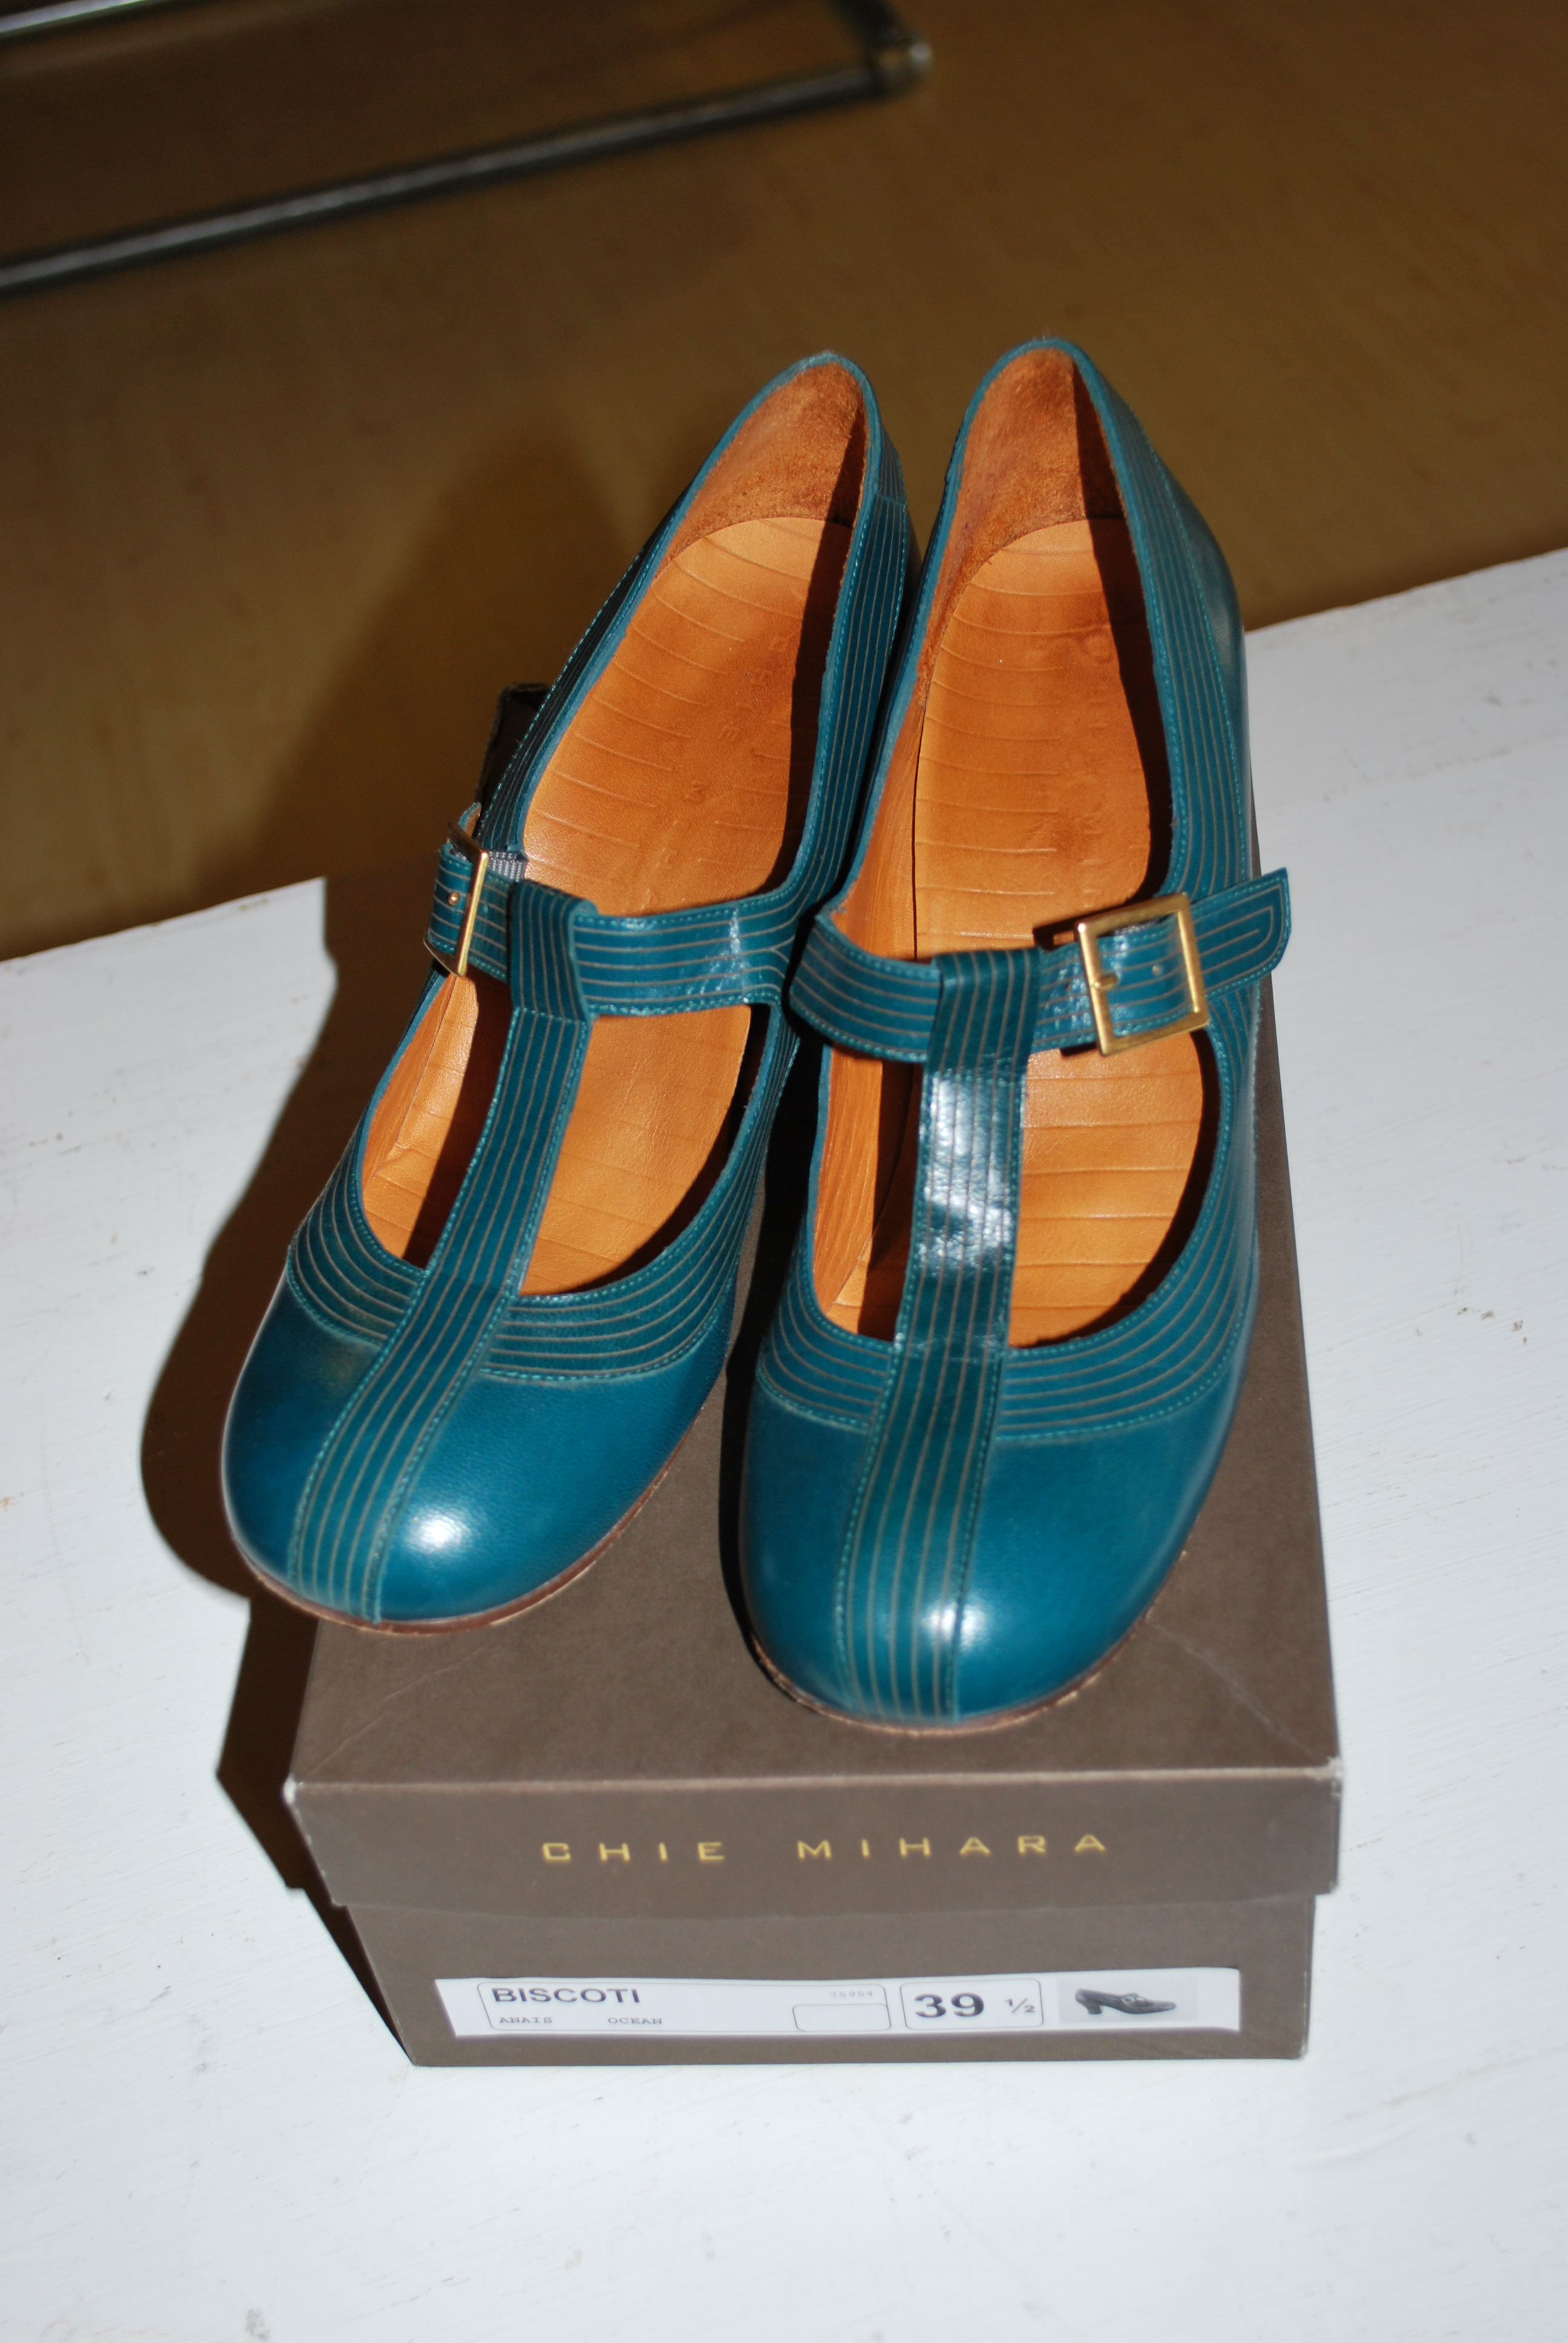 Items for sale chie mihara biscotti shoes hayden for Quirky items for sale